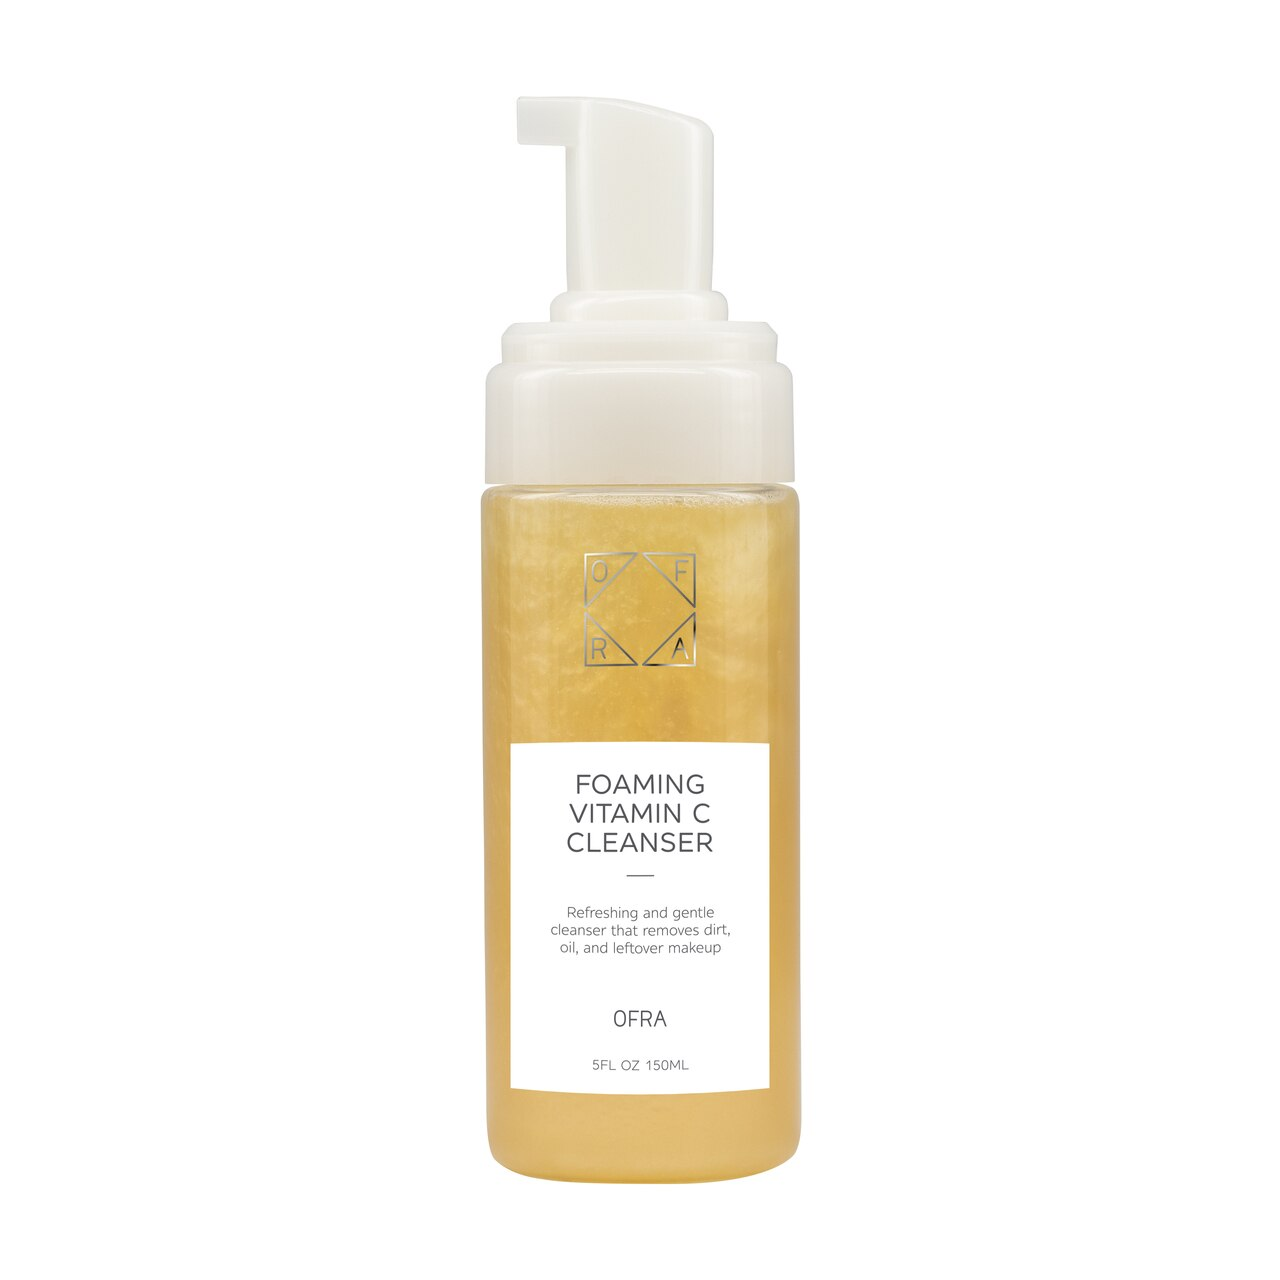 Foaming Vitamin C Cleanser